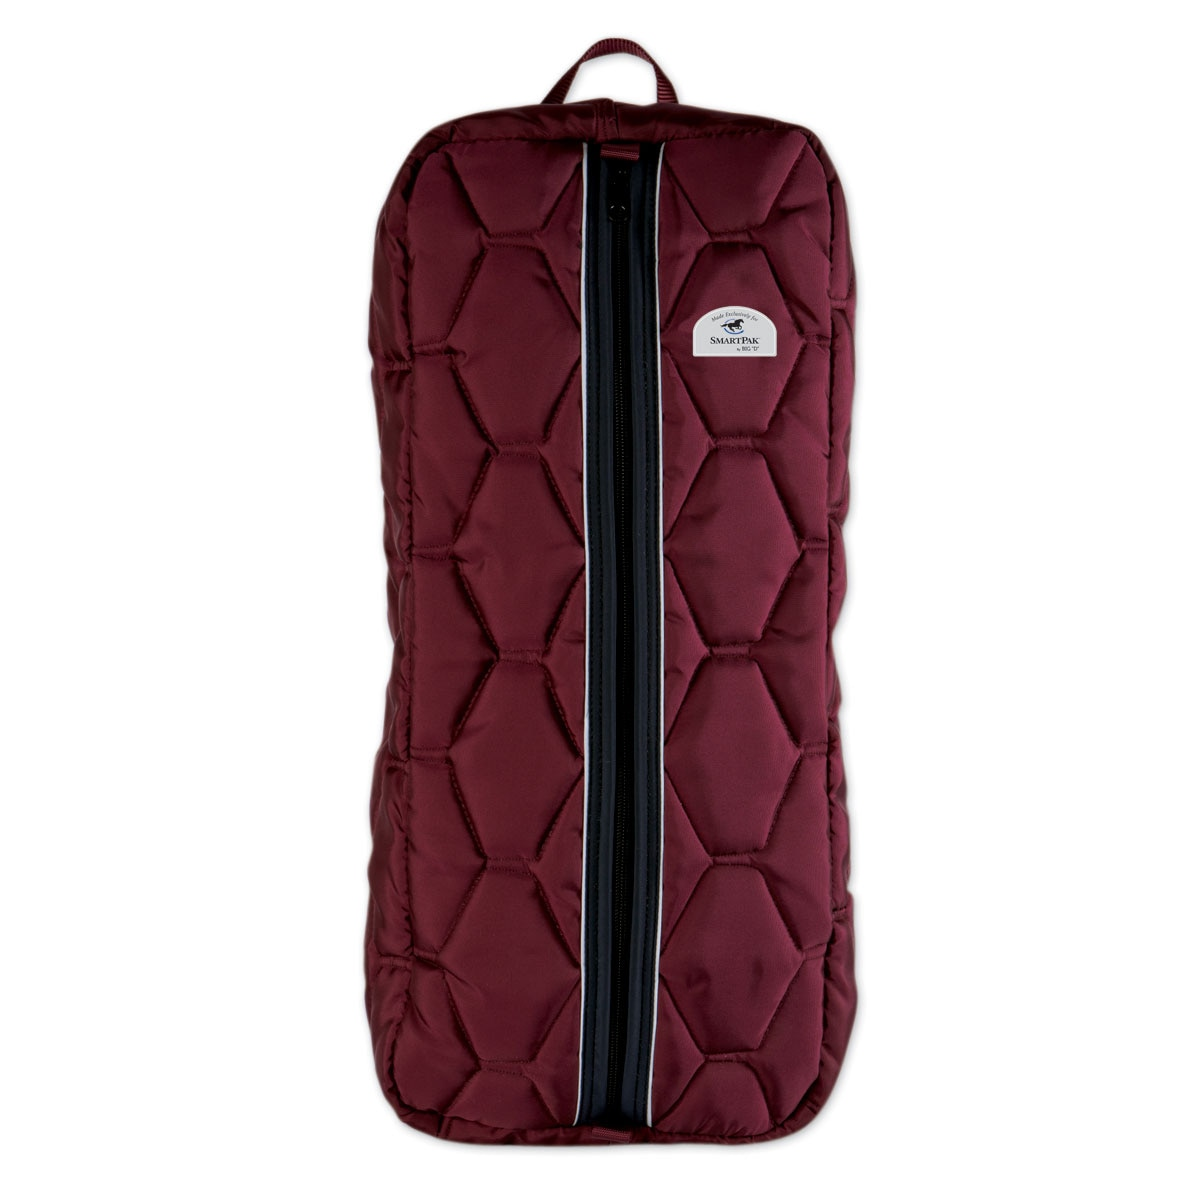 SmartPak Exclusive Quilted Bridle Bag by Big D 2ad2408516a6e